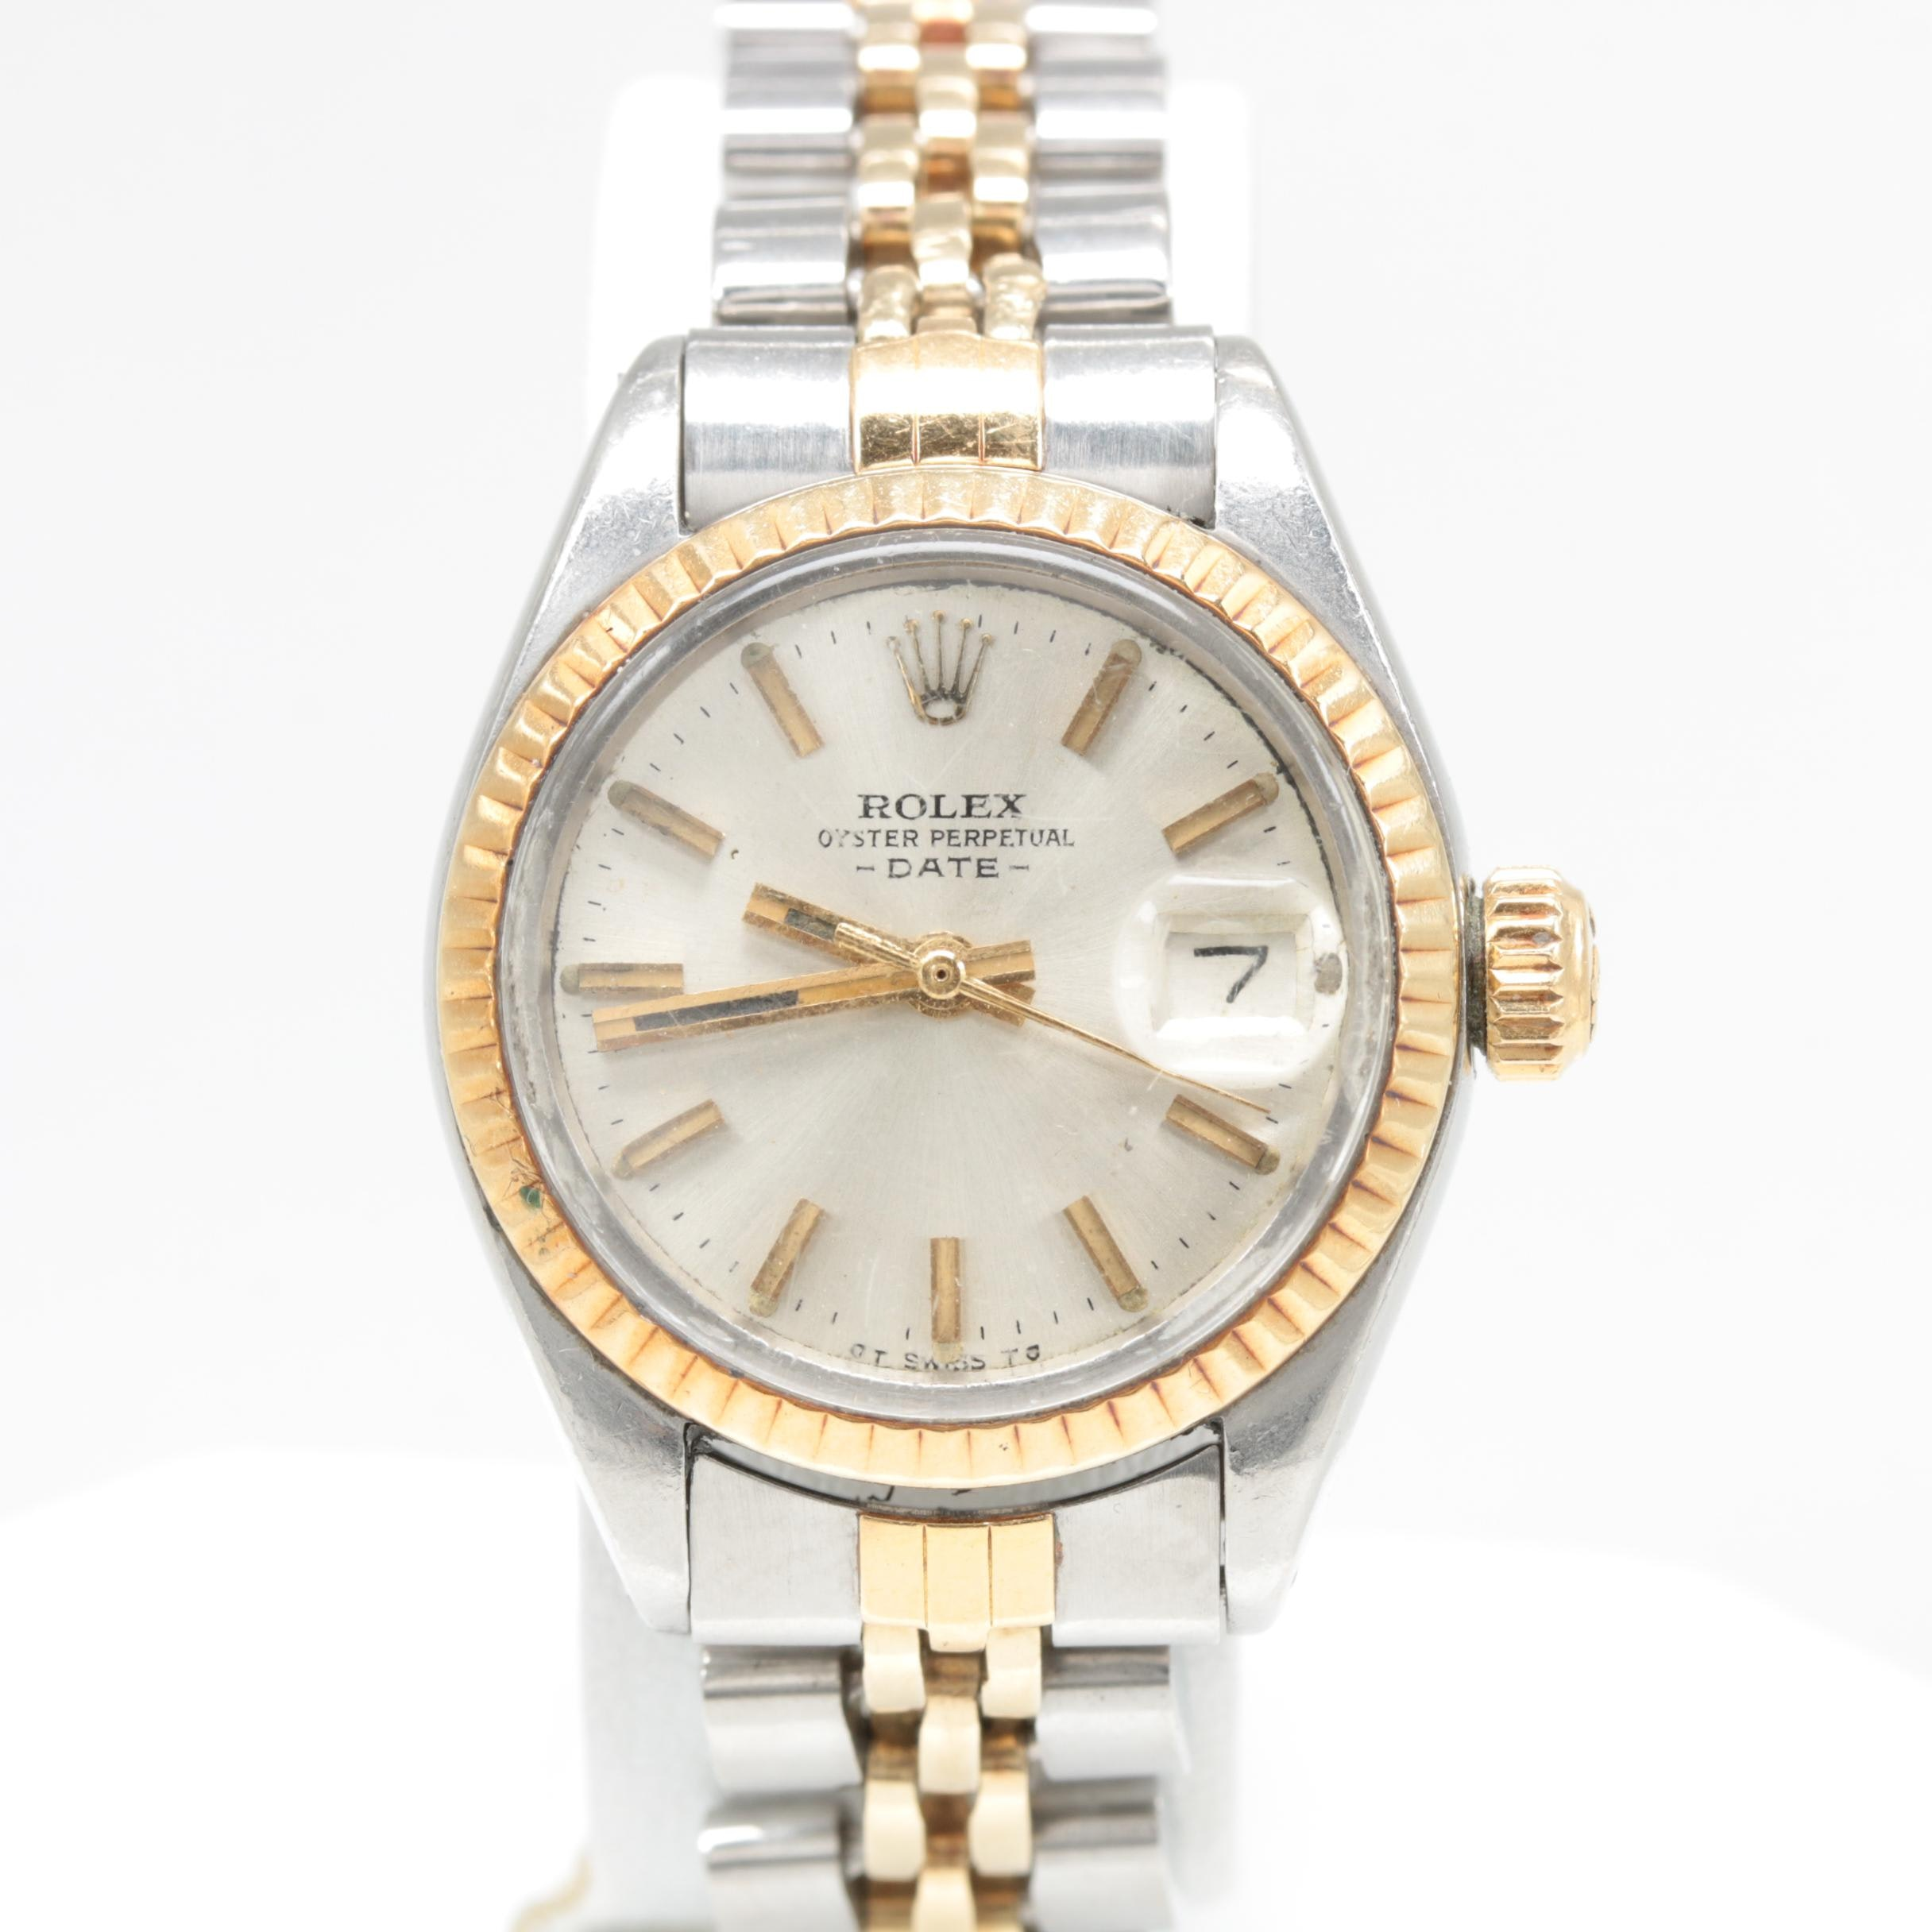 Circa 1973 Rolex Oyster Perpetual Date 14K Yellow Gold Two Tone Wristwatch